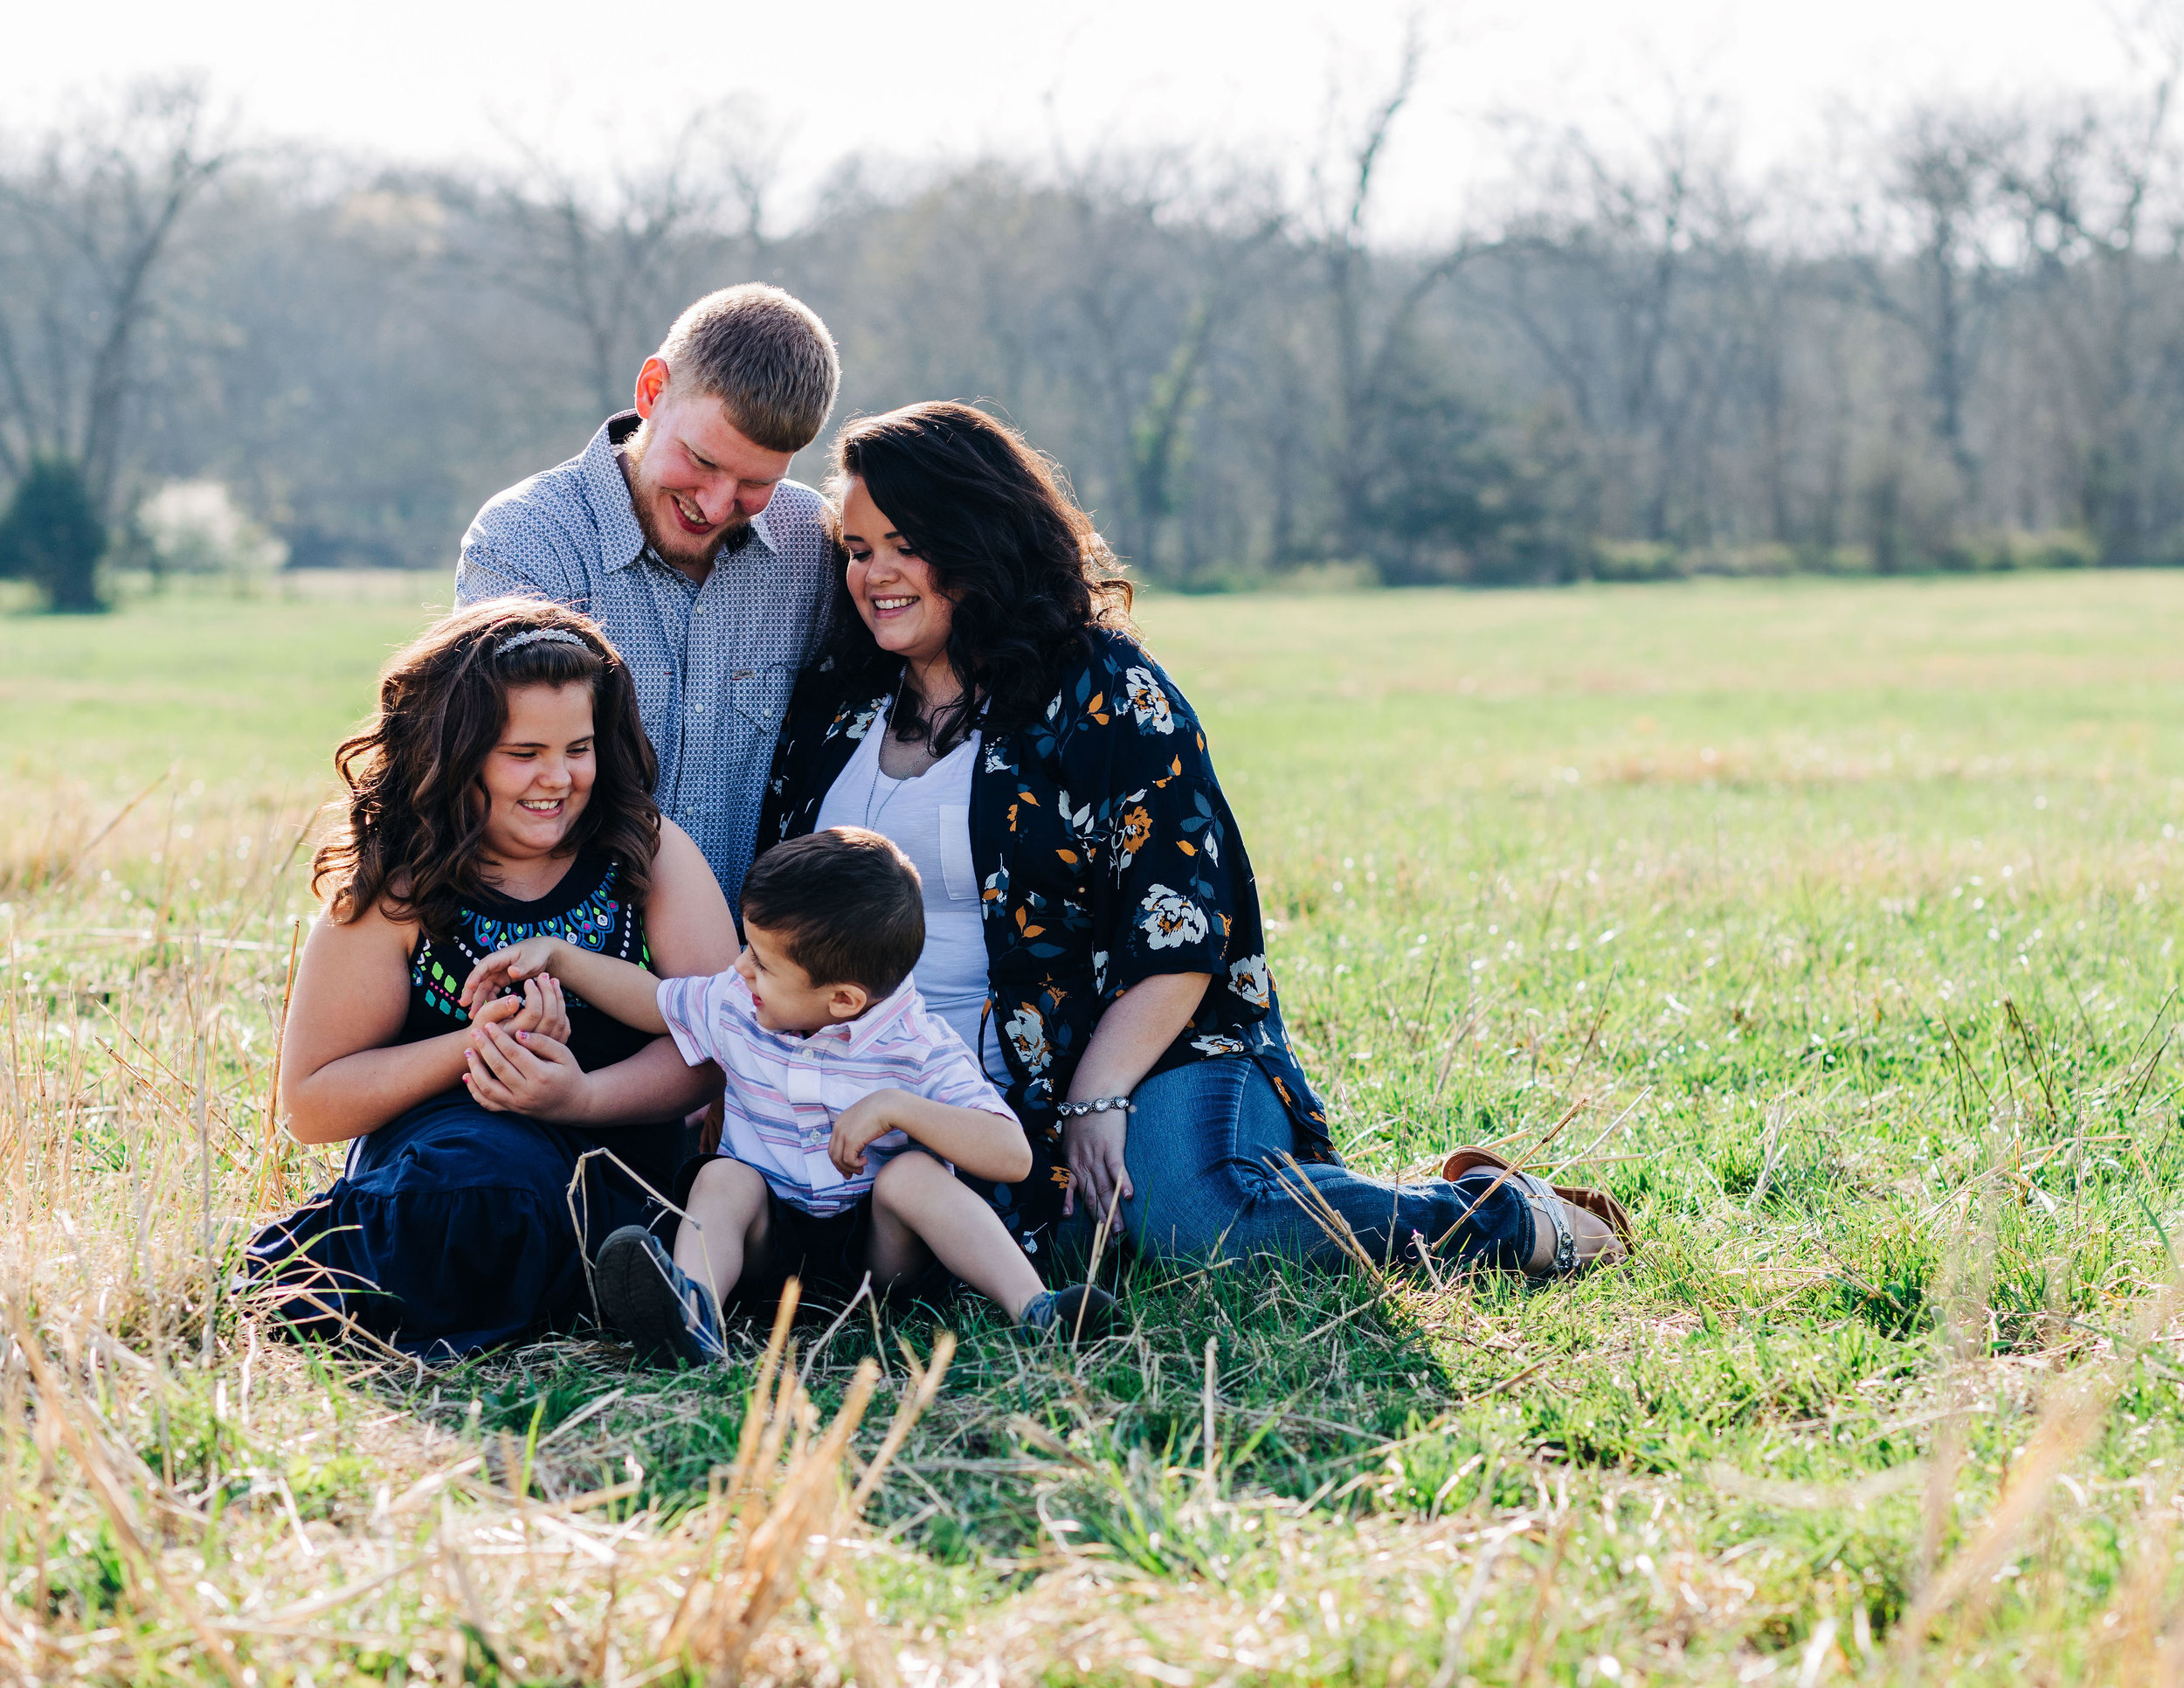 """hale family - """"If y'all need a photographer that captures precious moments like this please shoot her a message!!! I'm so happy with how everything turned out! She did an amazing job and I can't thank her enough!!!!"""""""